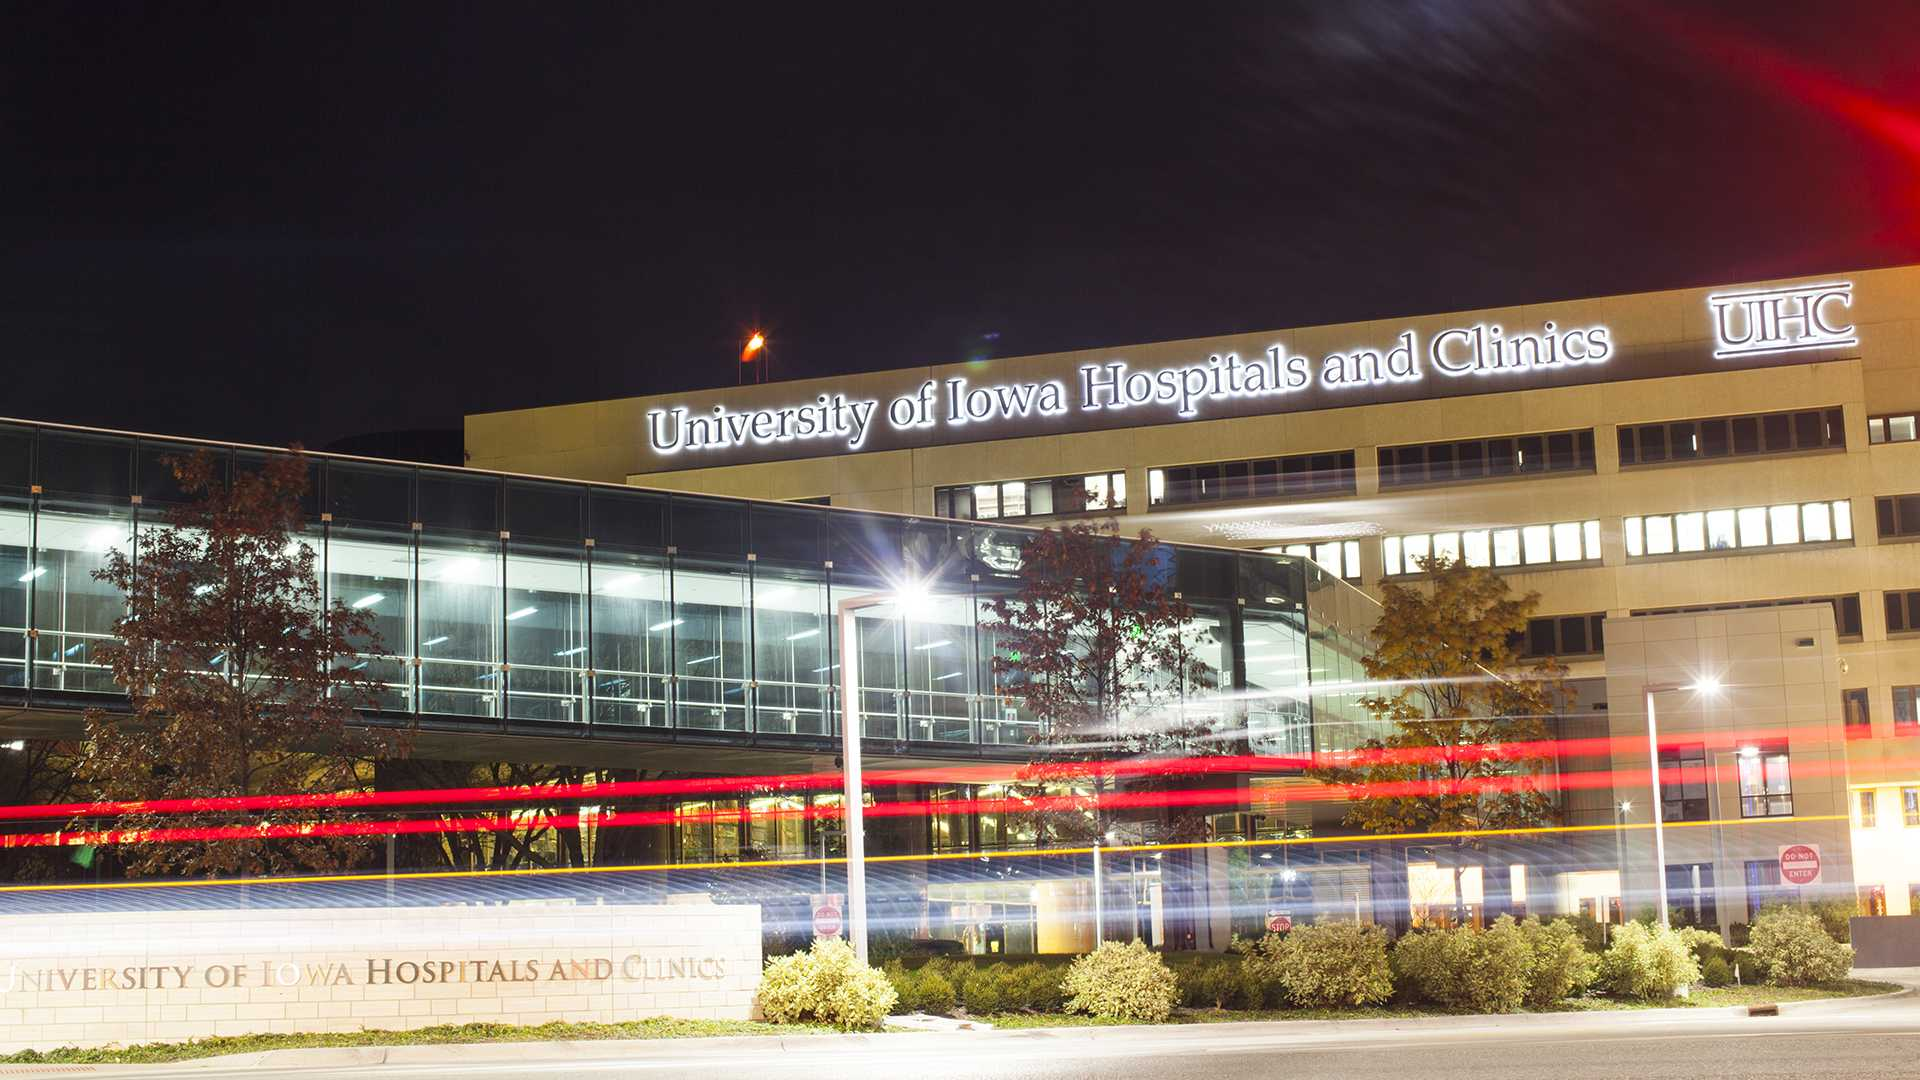 Guest Opinion: A strong UI Health Care needs state support for a strong University of Iowa